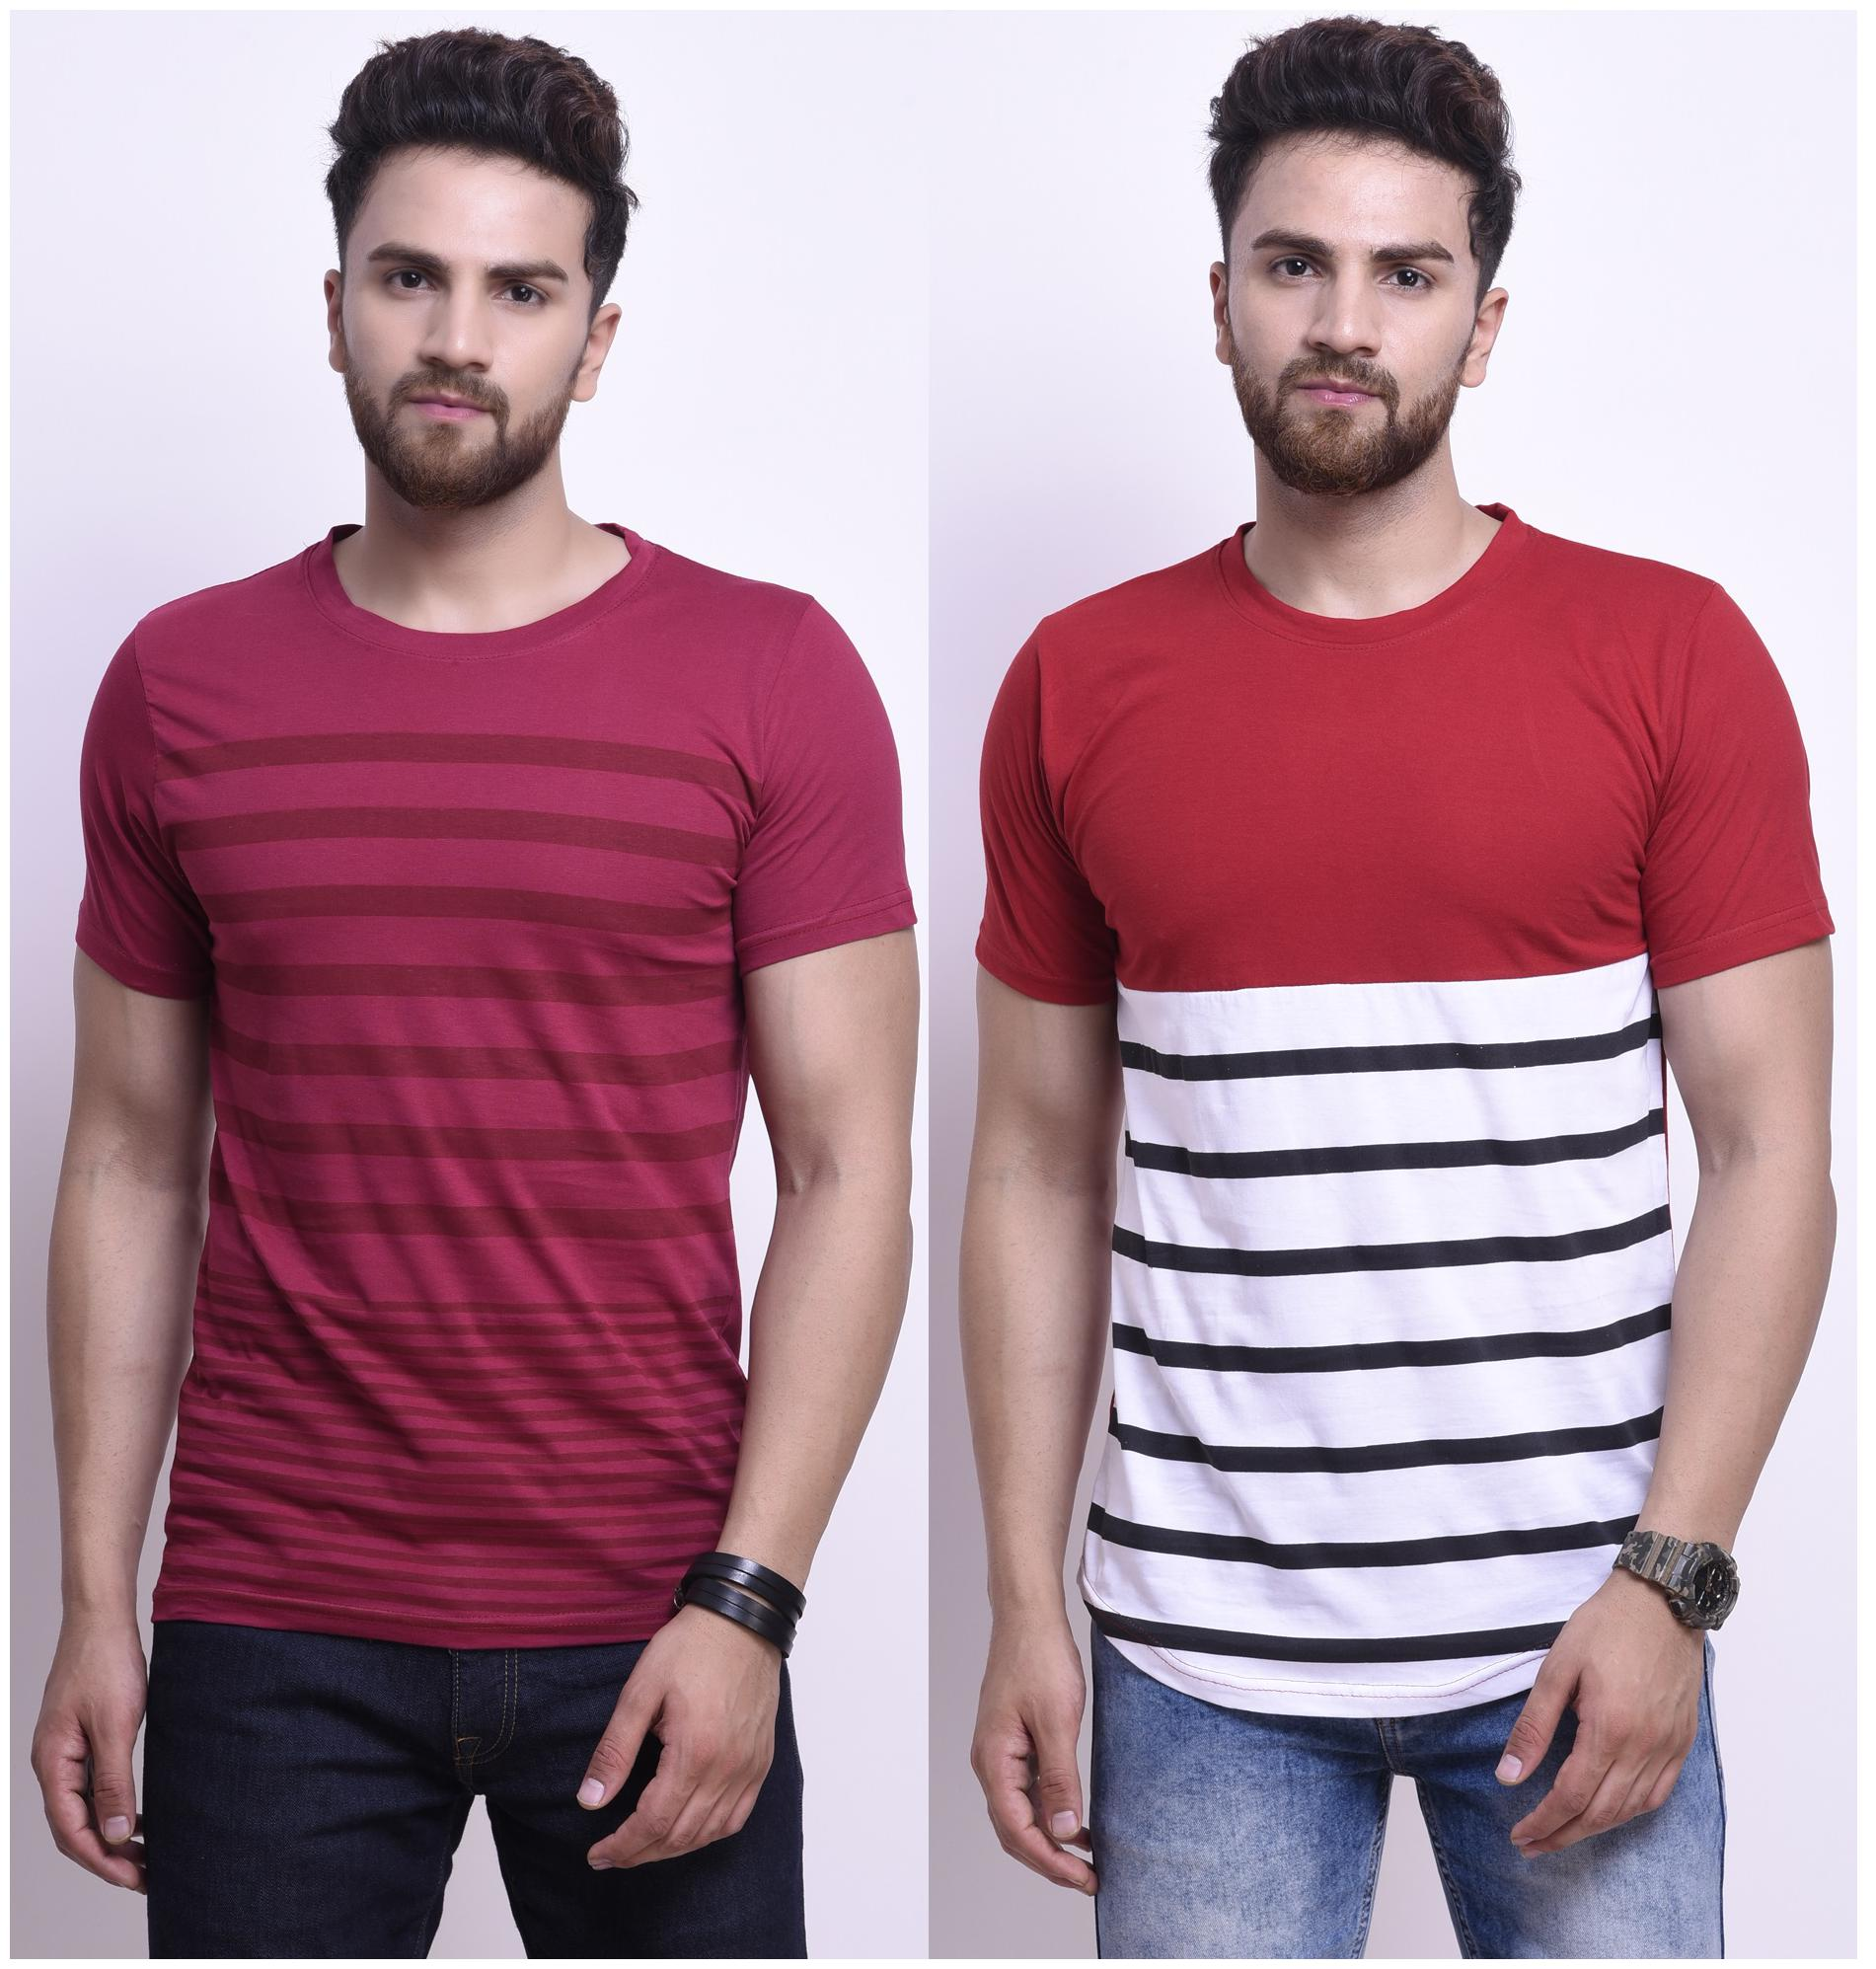 Stylesmyth Cotton Half Sleeves T-shirt